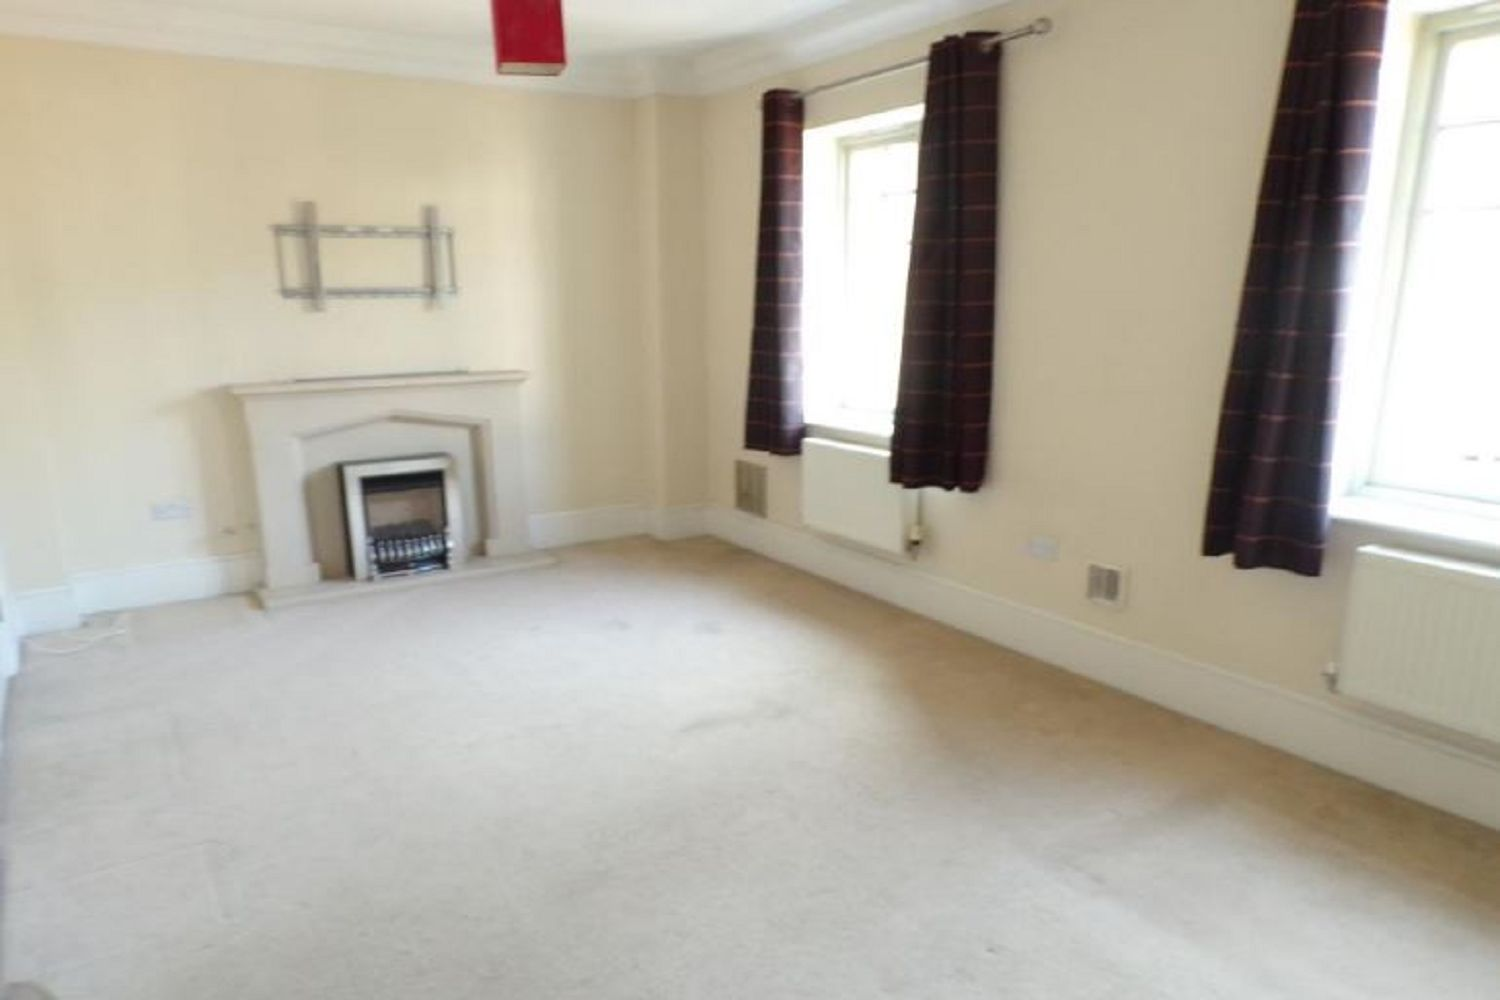 Black Cat Drive, Northampton, NN5 4EA